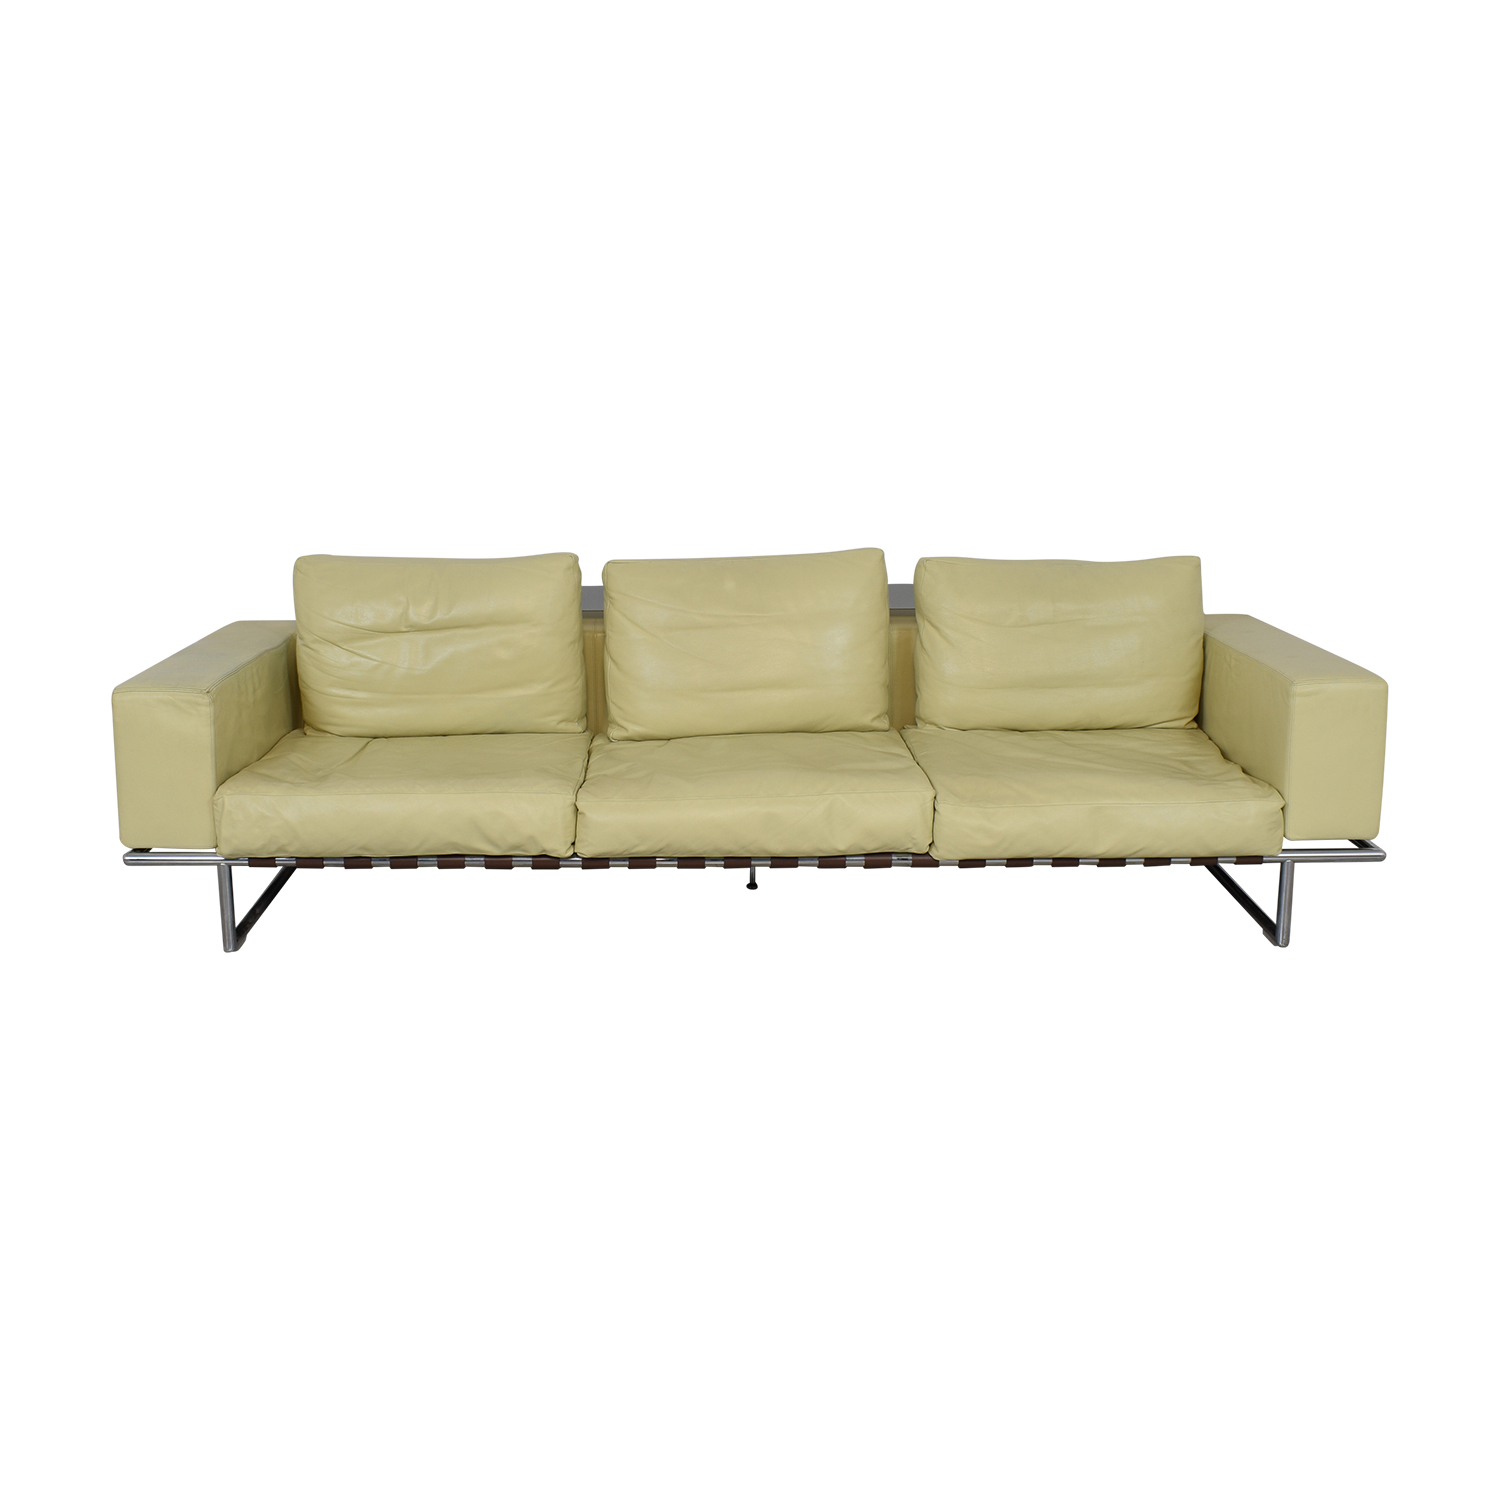 i4Mariani i4Mariani Kristall Sofa on sale